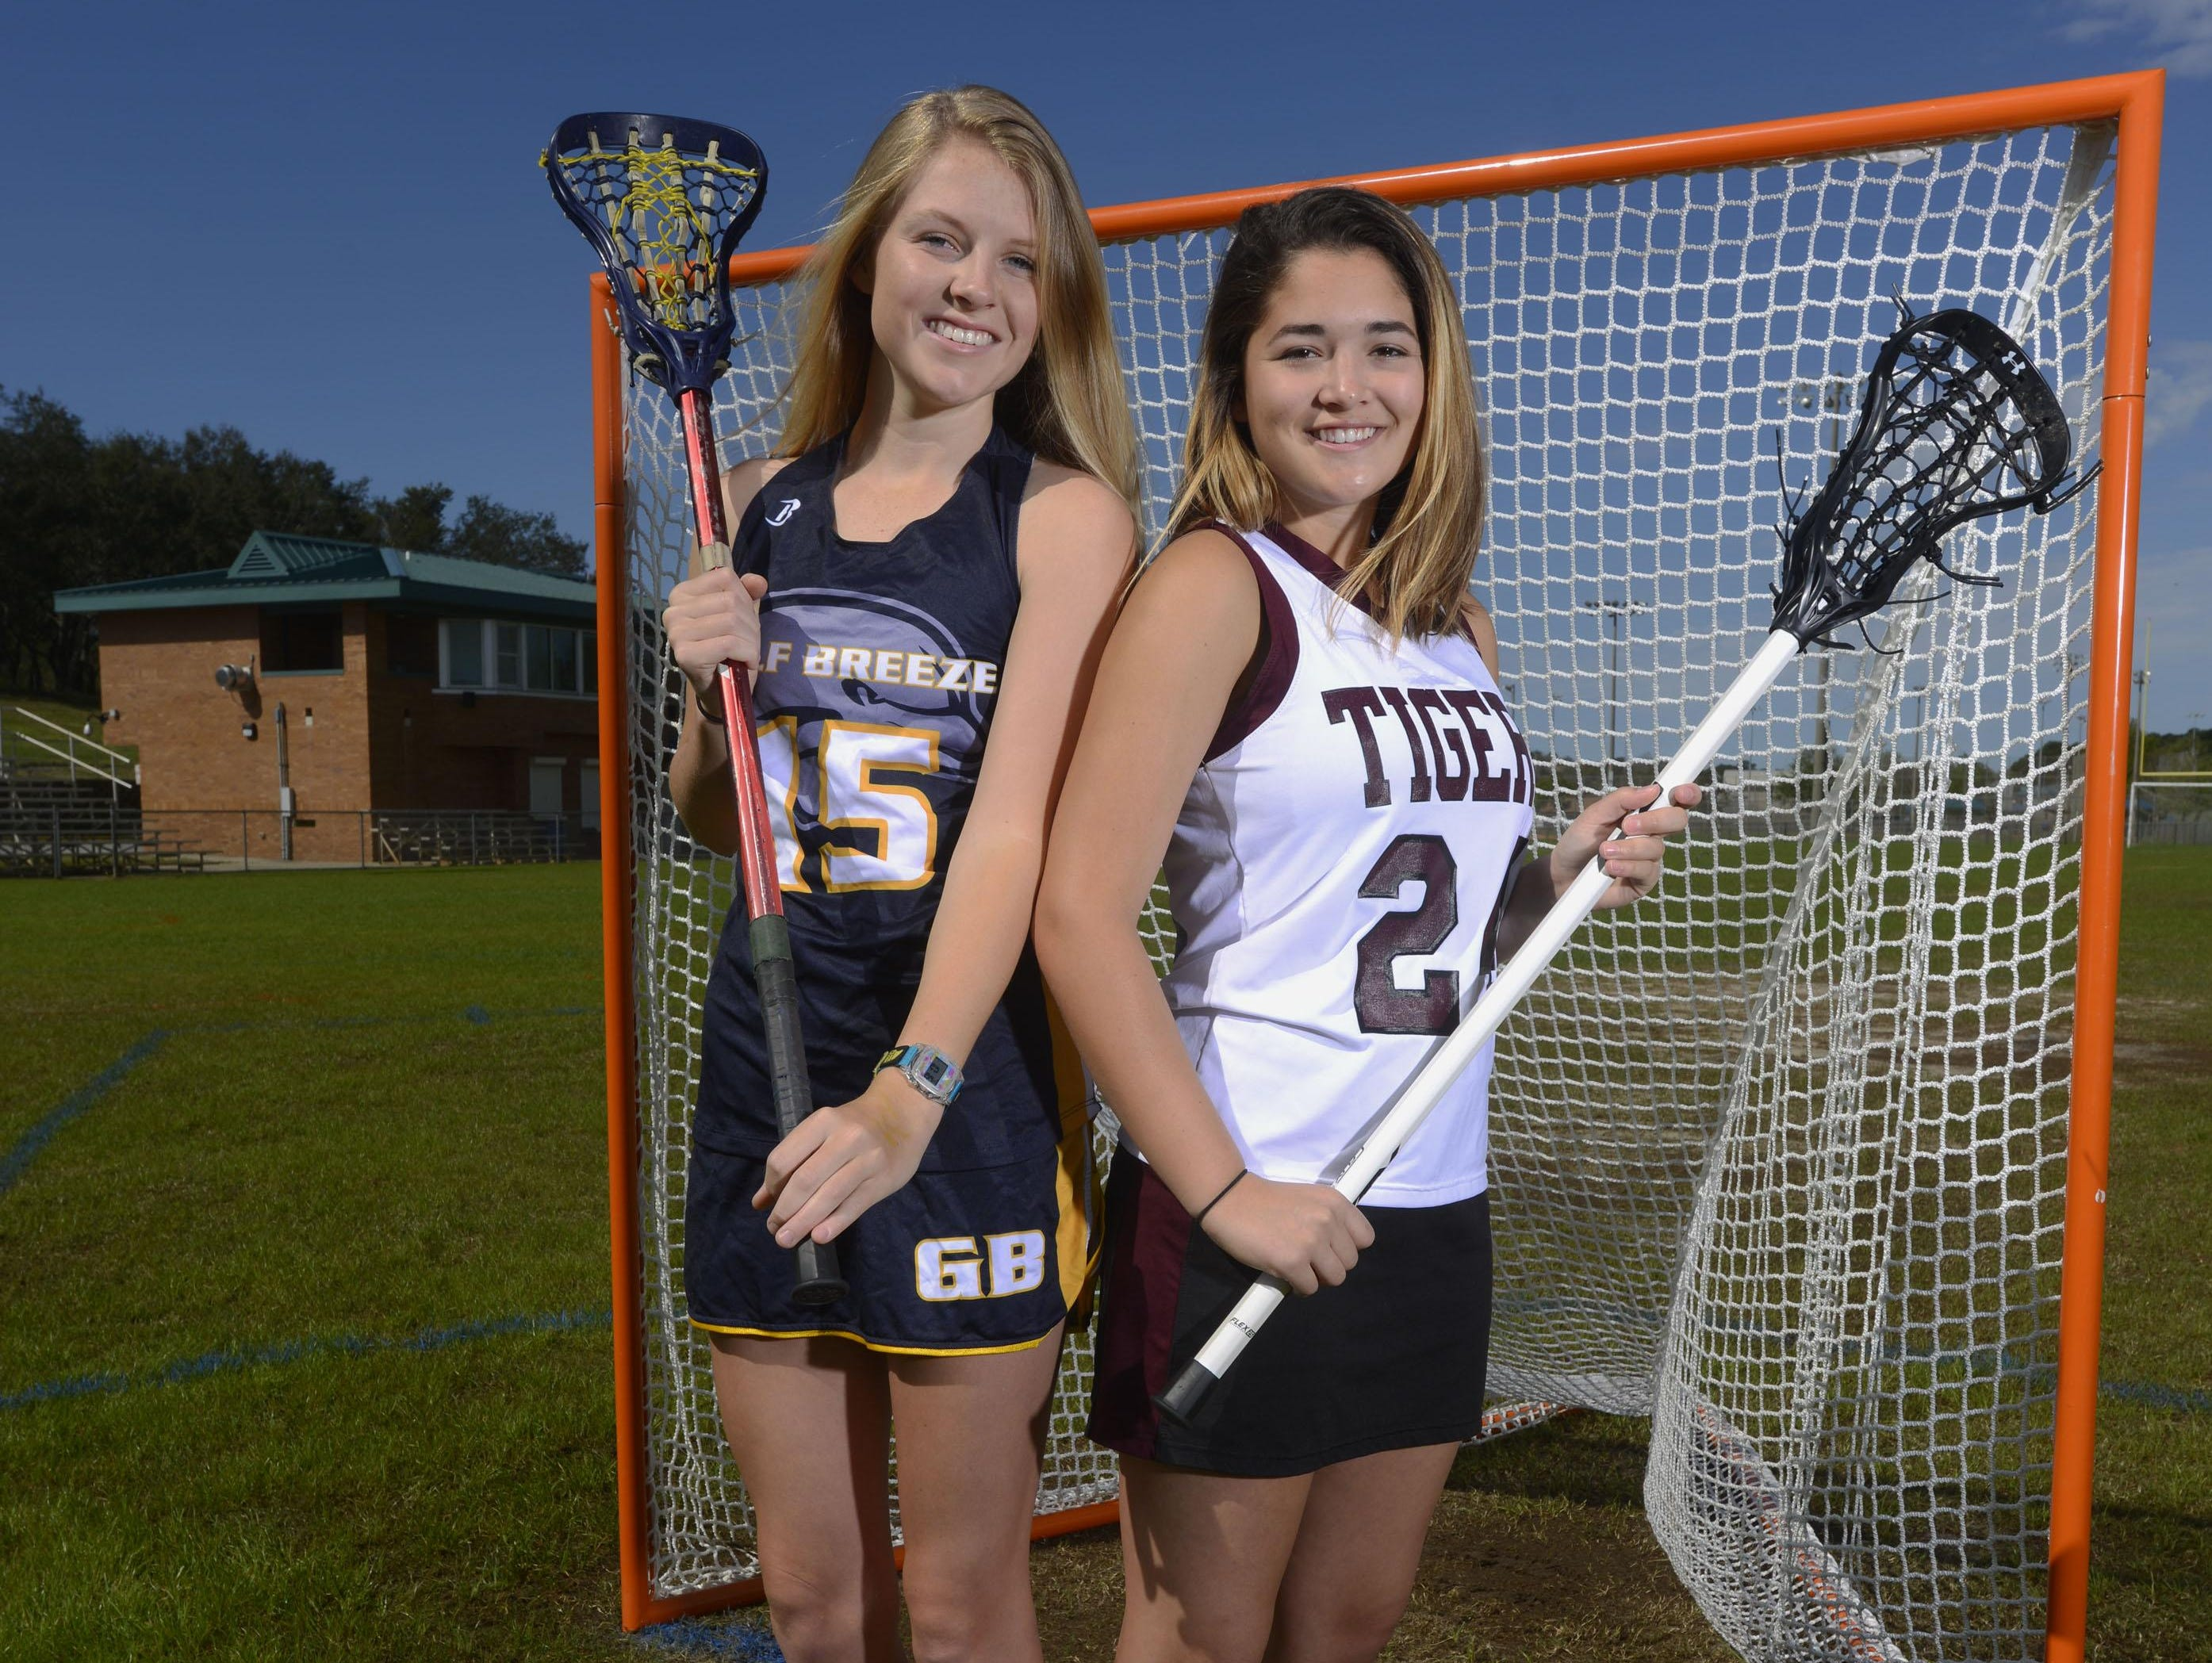 Prep lacrosse stars and best friends Frances Williams, a senior at Gulf Breeze High and Victoria Warren, a junior at Pensacola High on the field at Shoreline Park where both girls learned the sport as middle school kids.